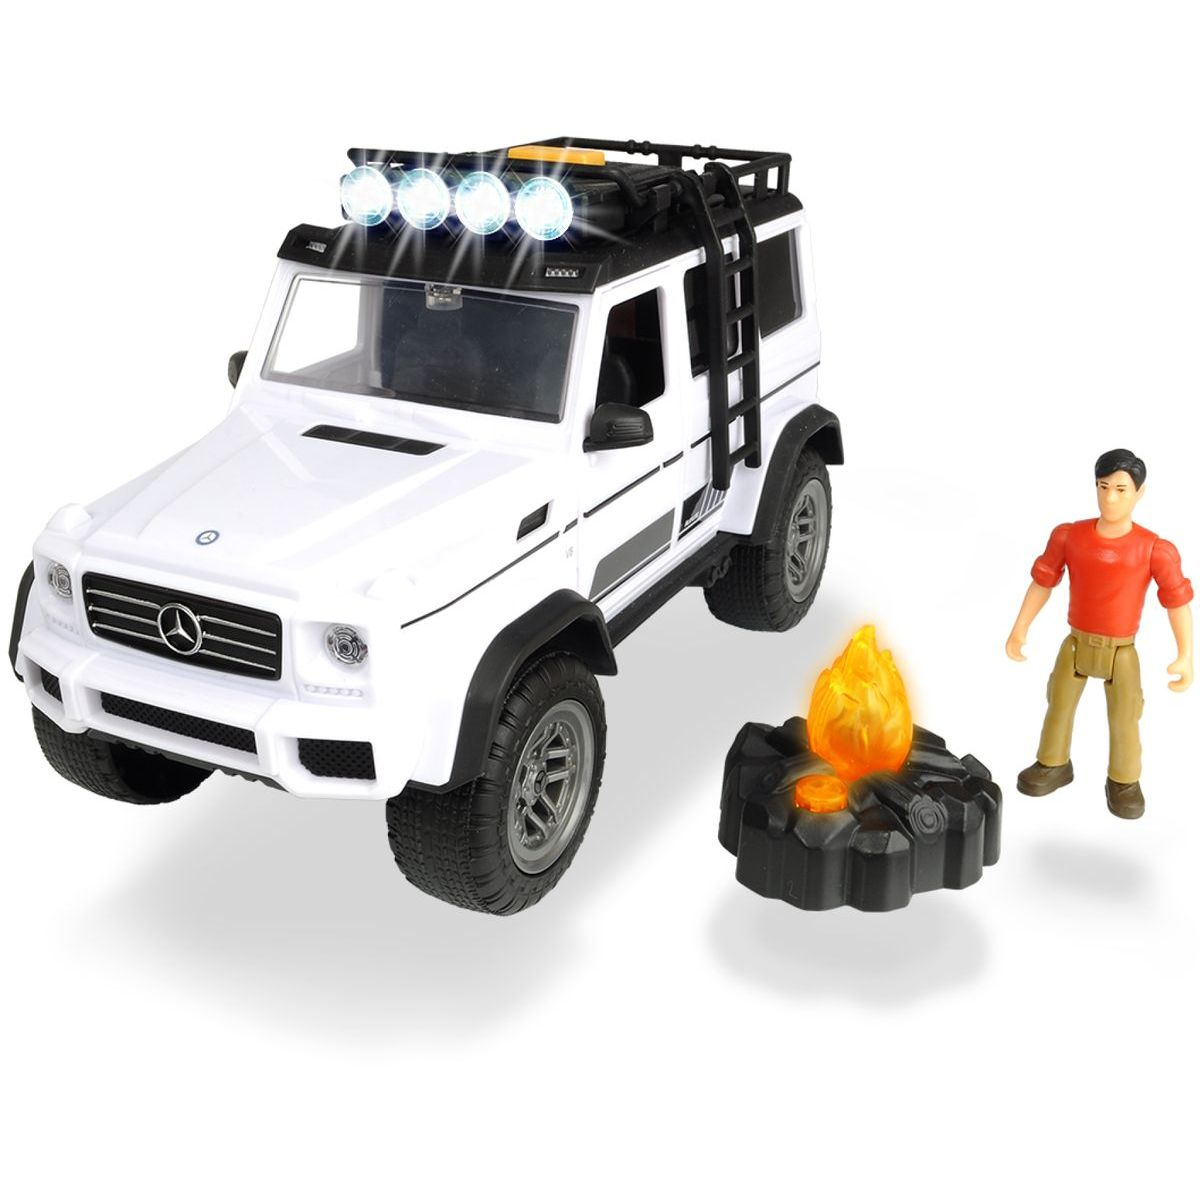 Dickie Mercedes V8 Adventure set